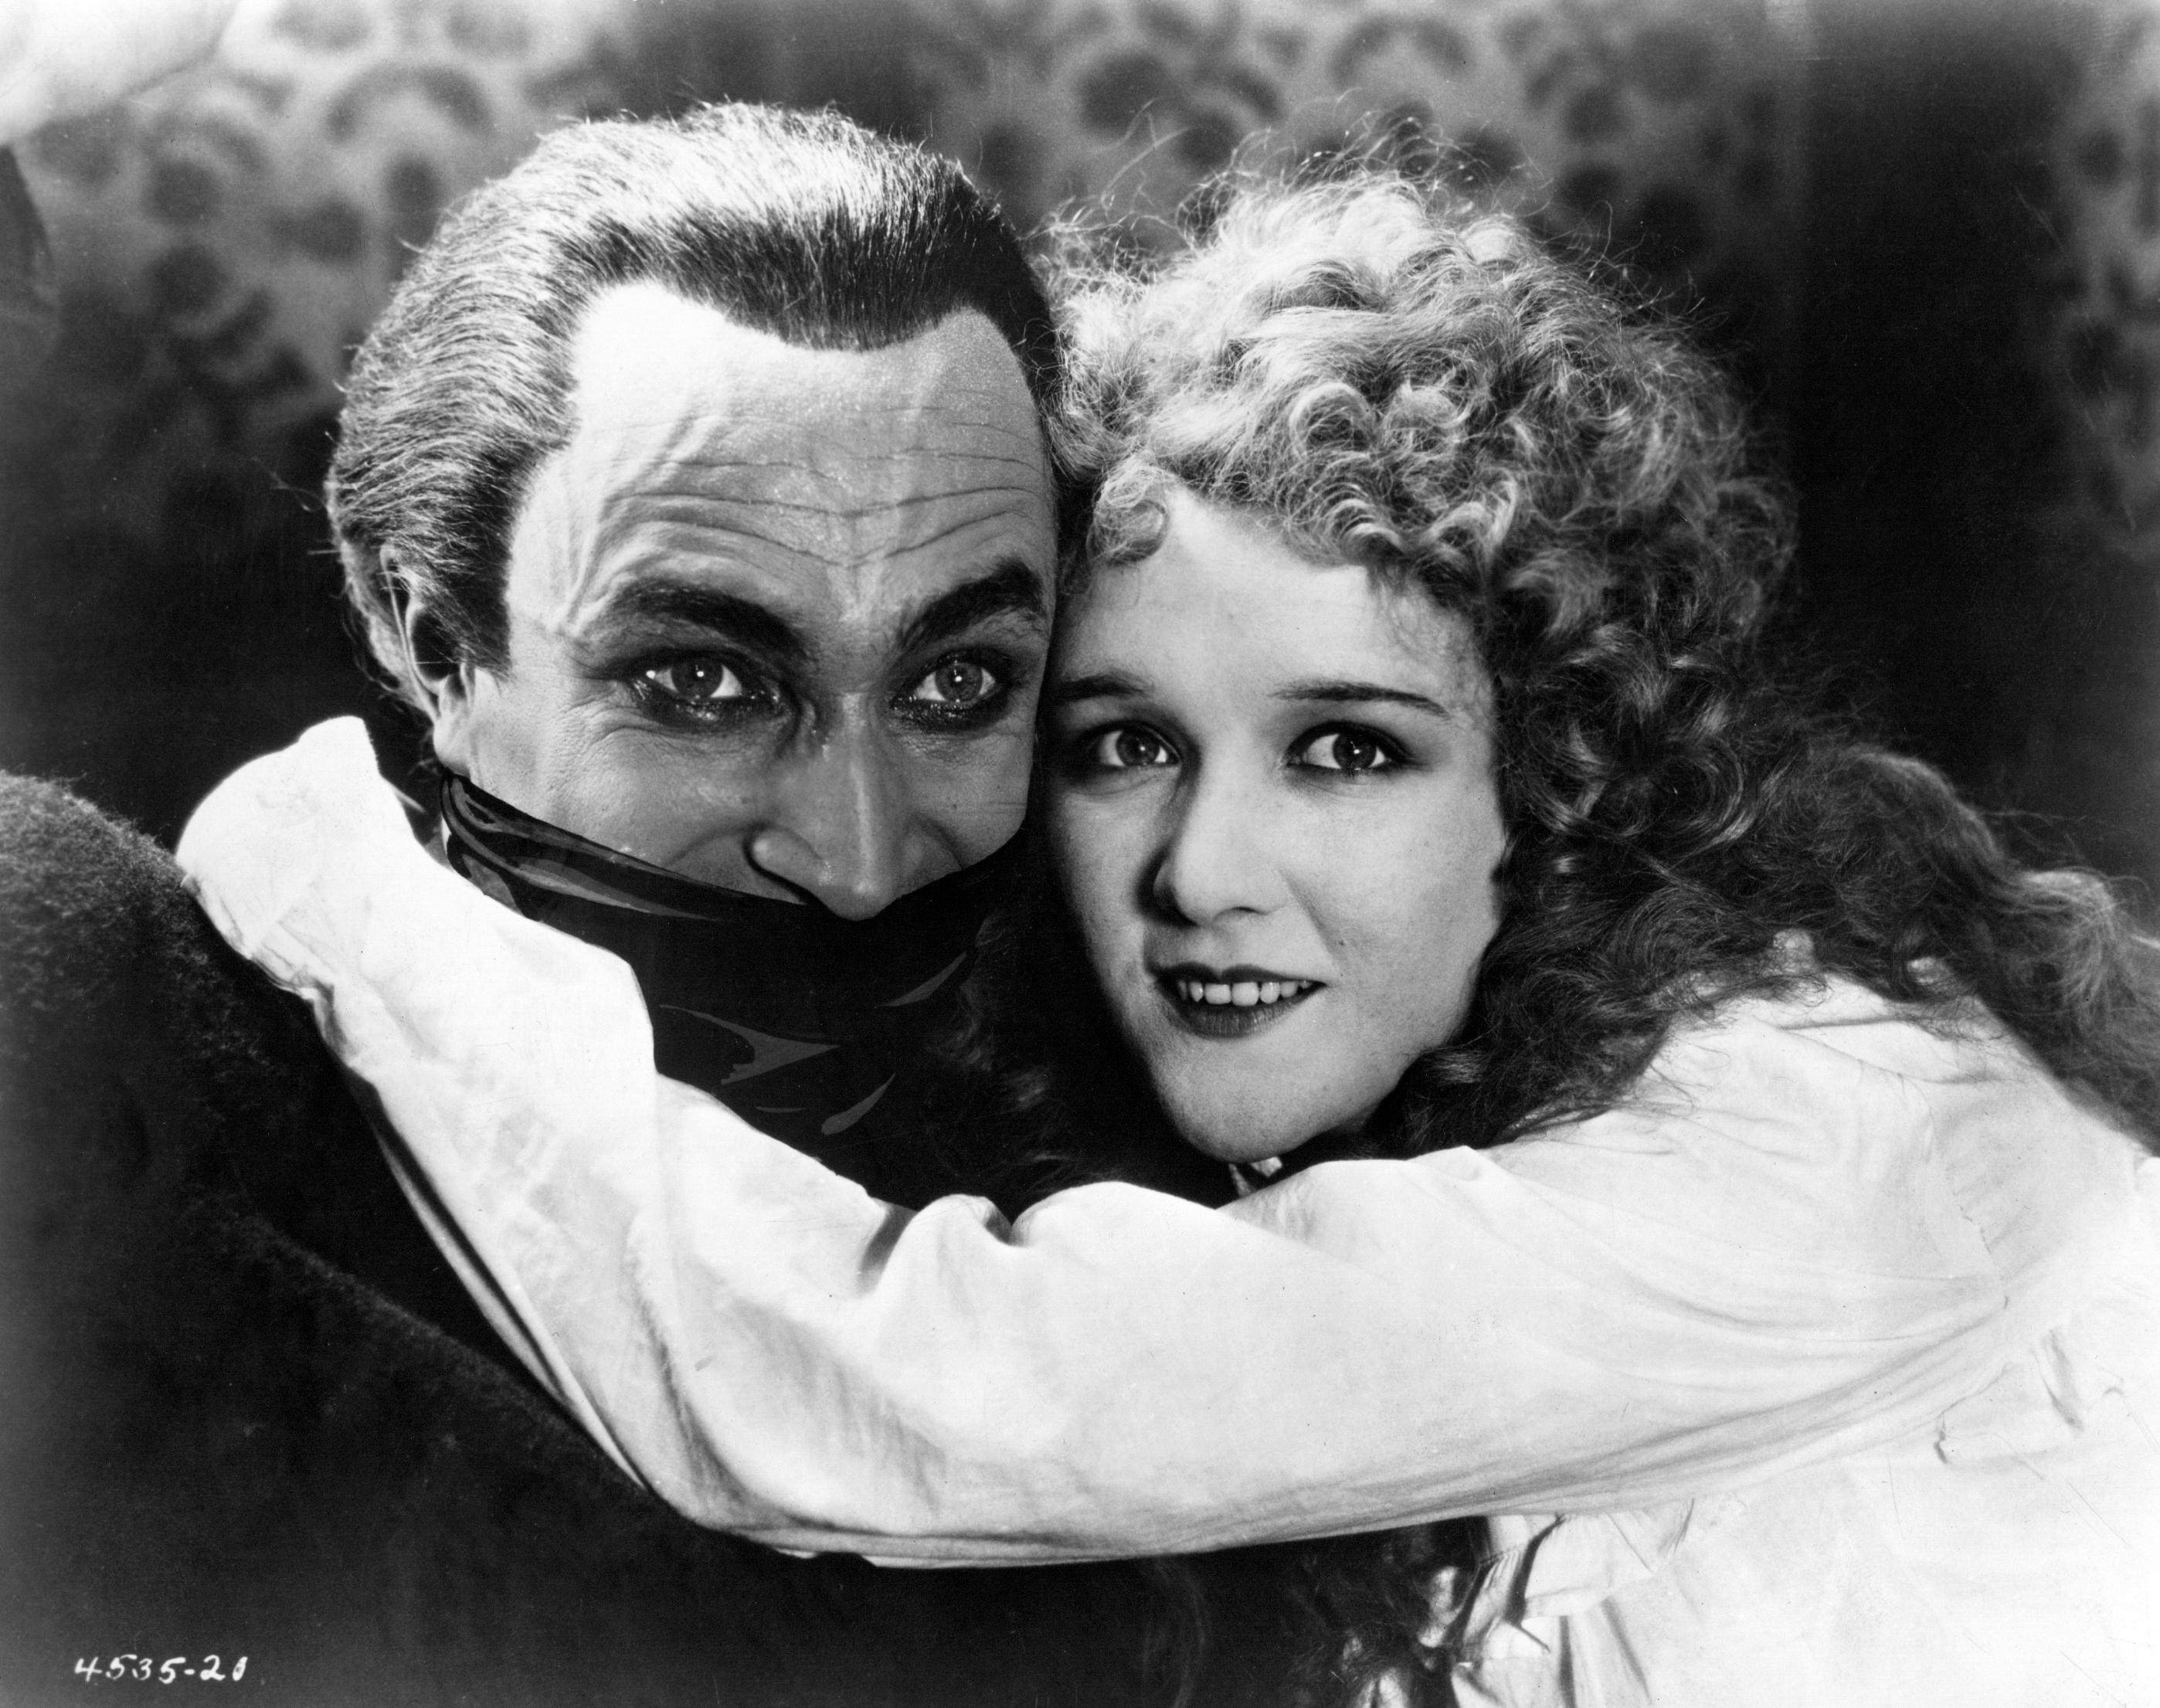 Mary Philbin and Conrad Veidt in The Man Who Laughs (1928)